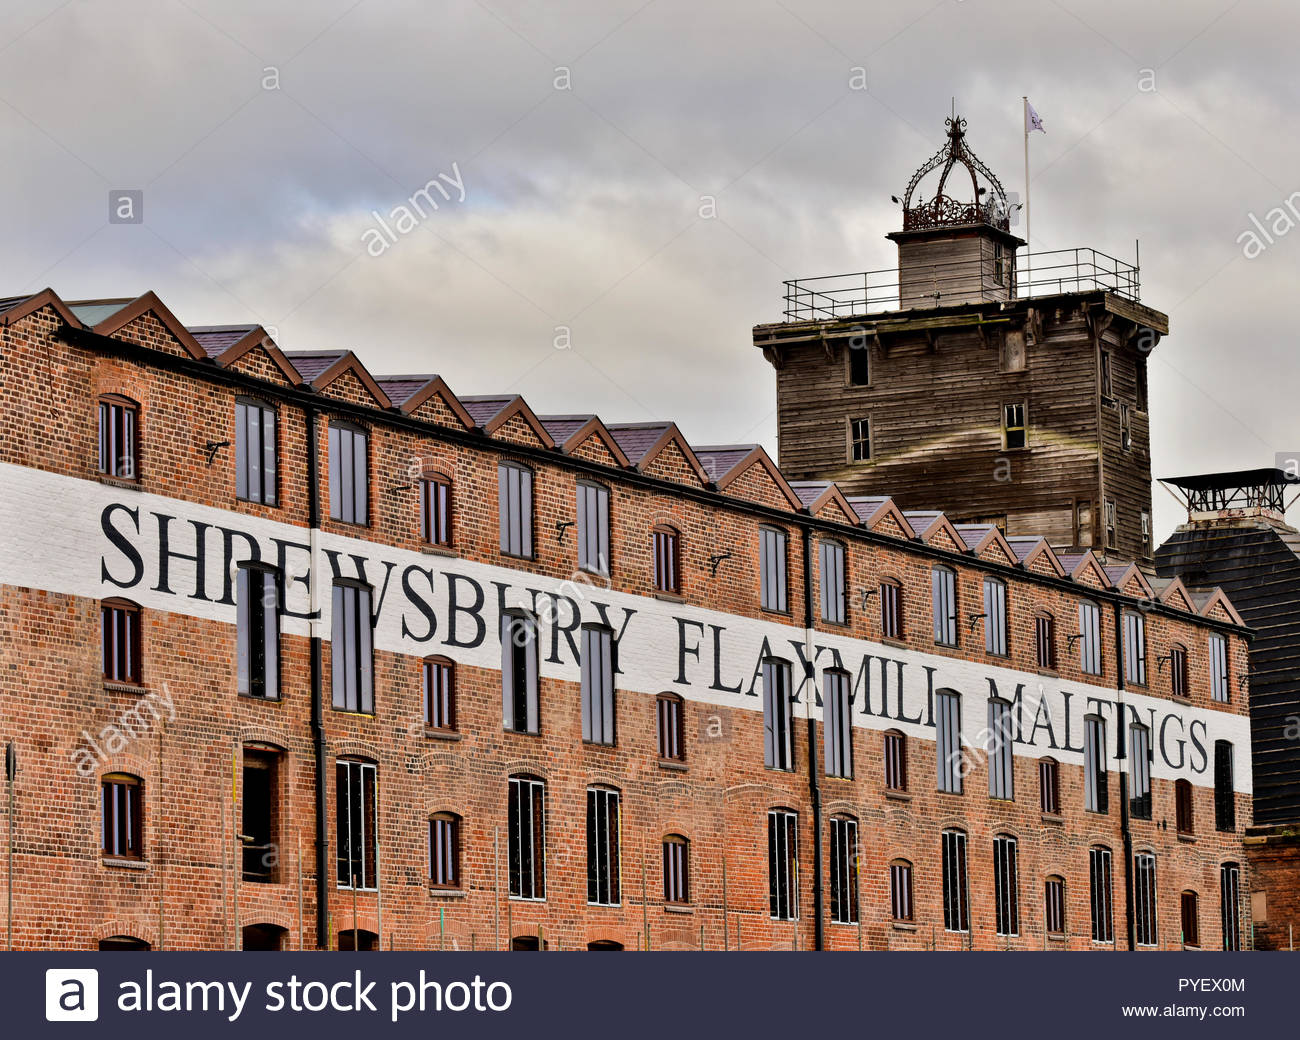 Restoration of the Shrewsbury Flaxmill Maltings continues. Built in 1797, it was the world's first Iron frame building, Shropshire, England, UK. Stock Photo